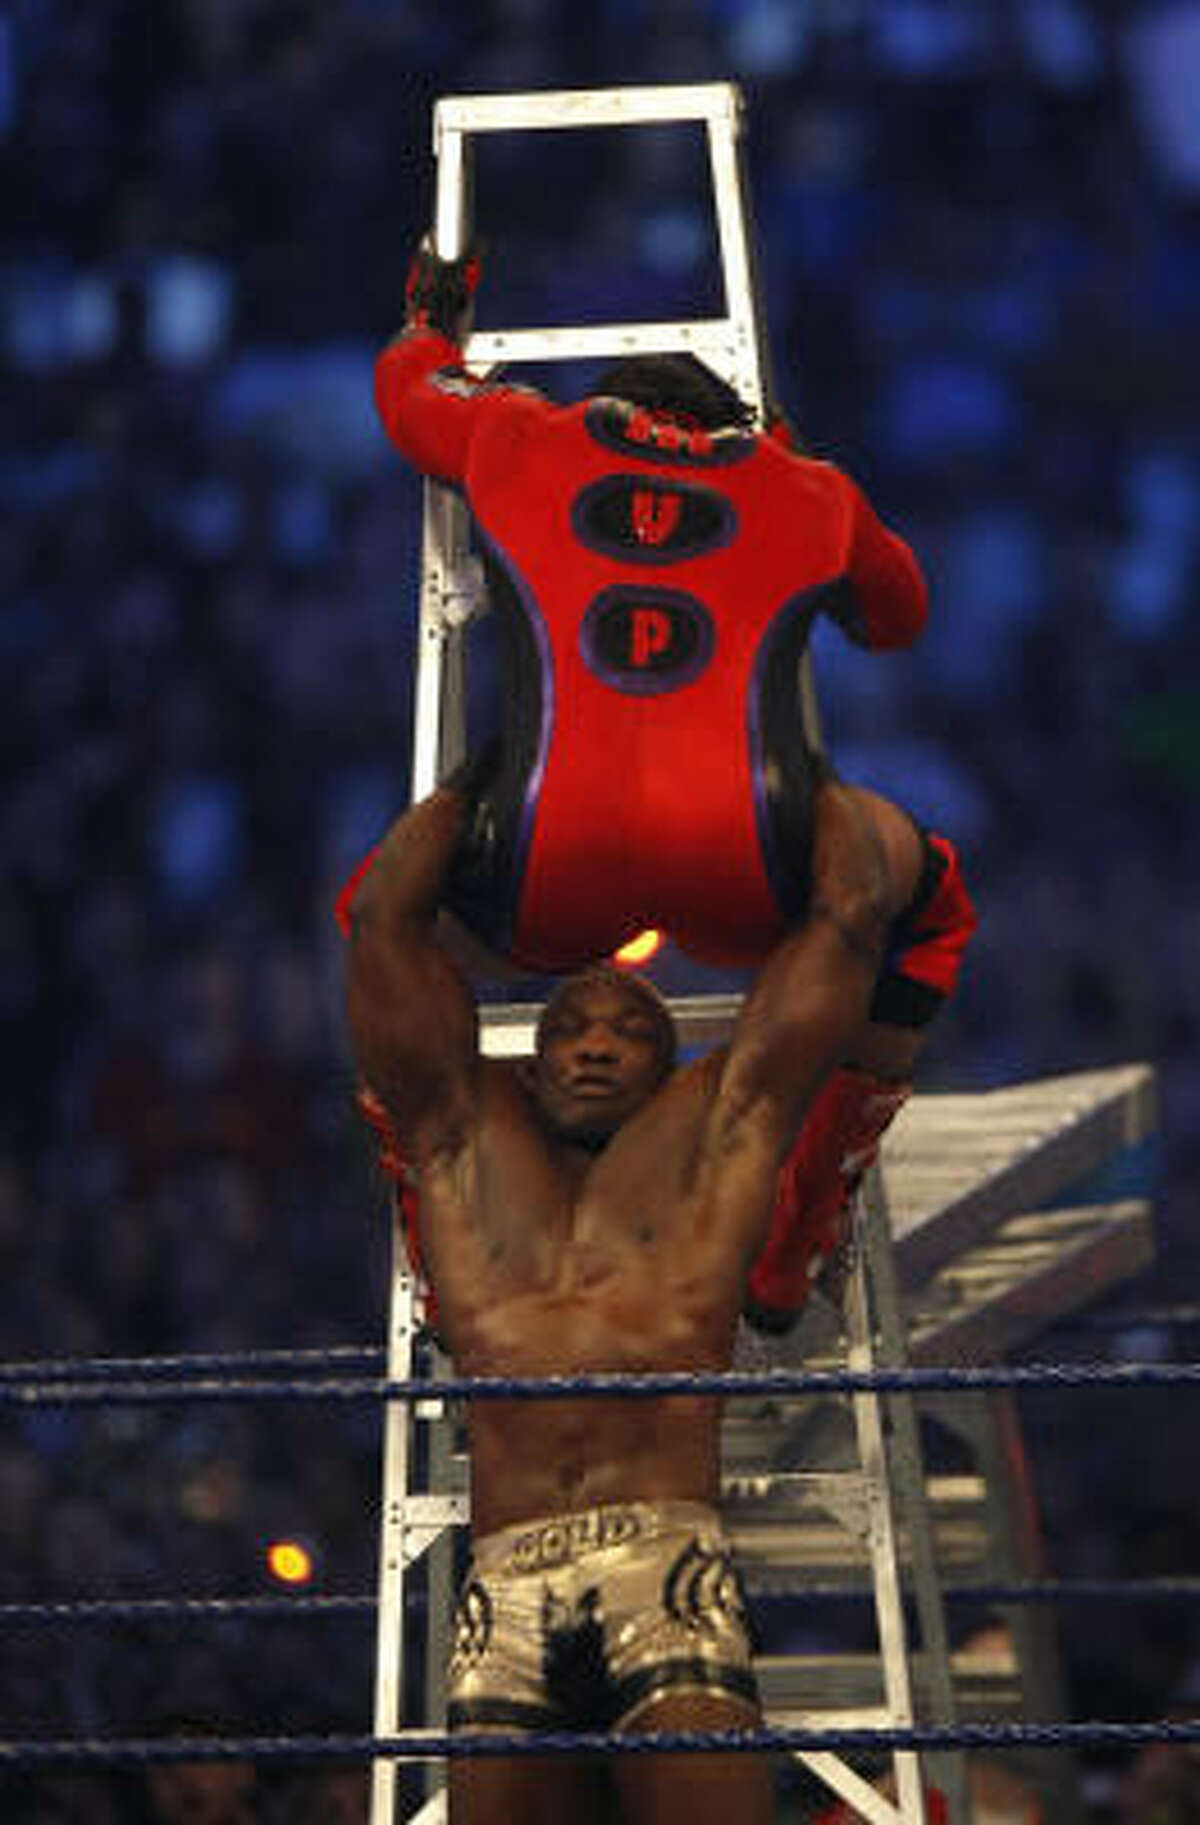 WWE wrestler Shelton Benjamin, also known as Gold Standard, bottom, brings down MVP during the Money in the Bank Ladder Match during the 25th anniversary of Wrestlemania.